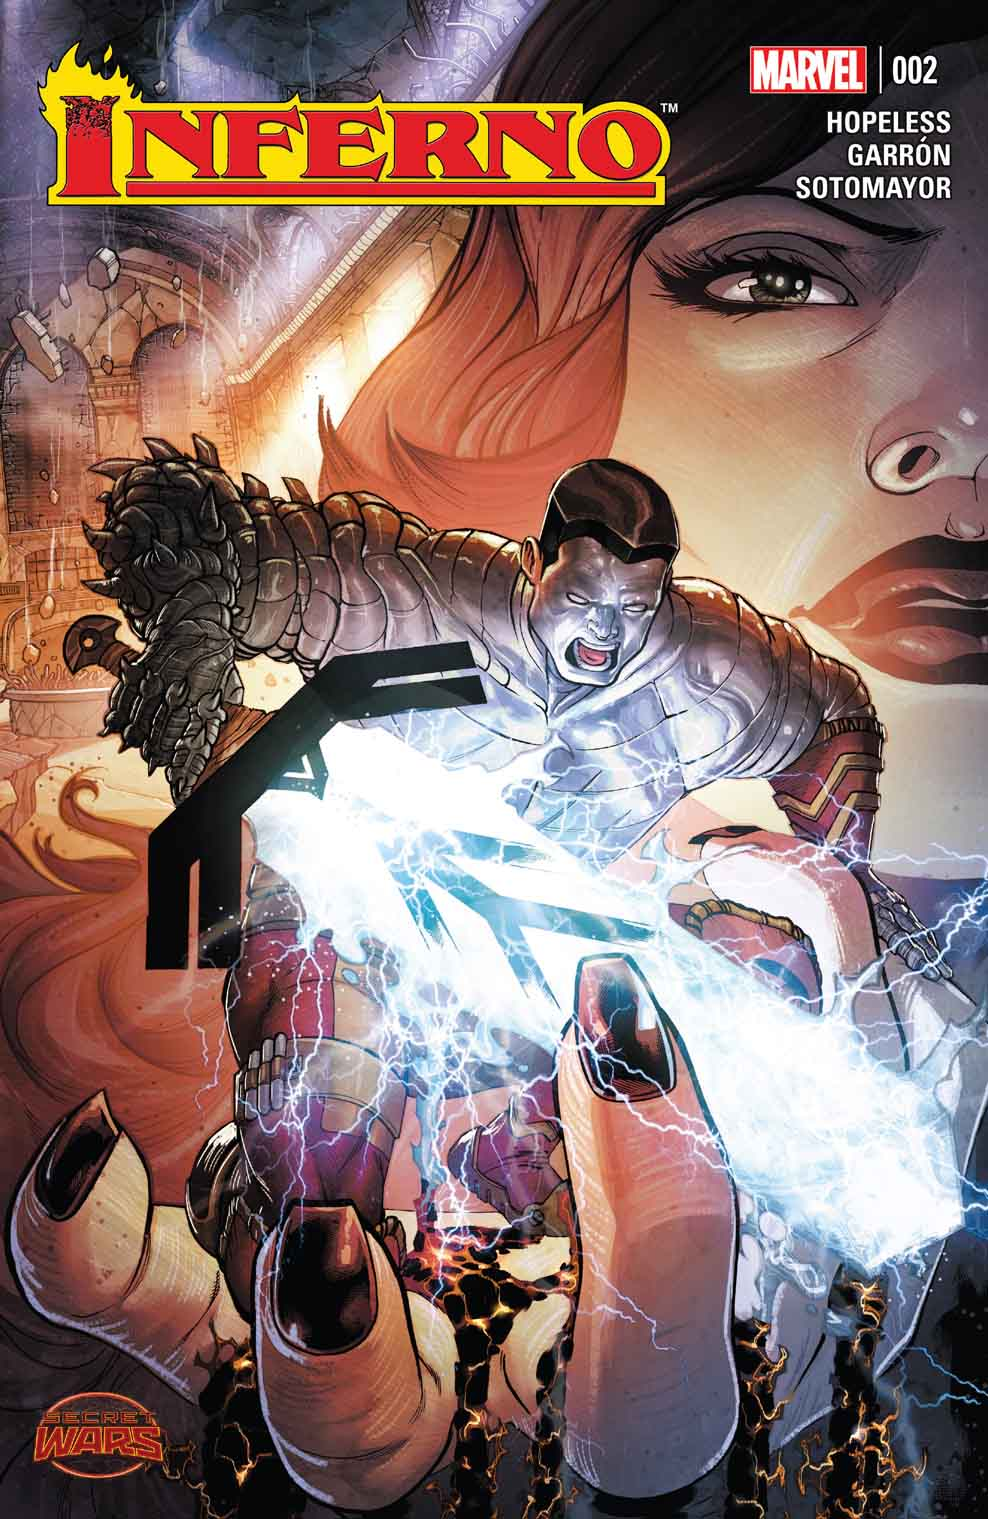 Secret Wars: Inferno #2